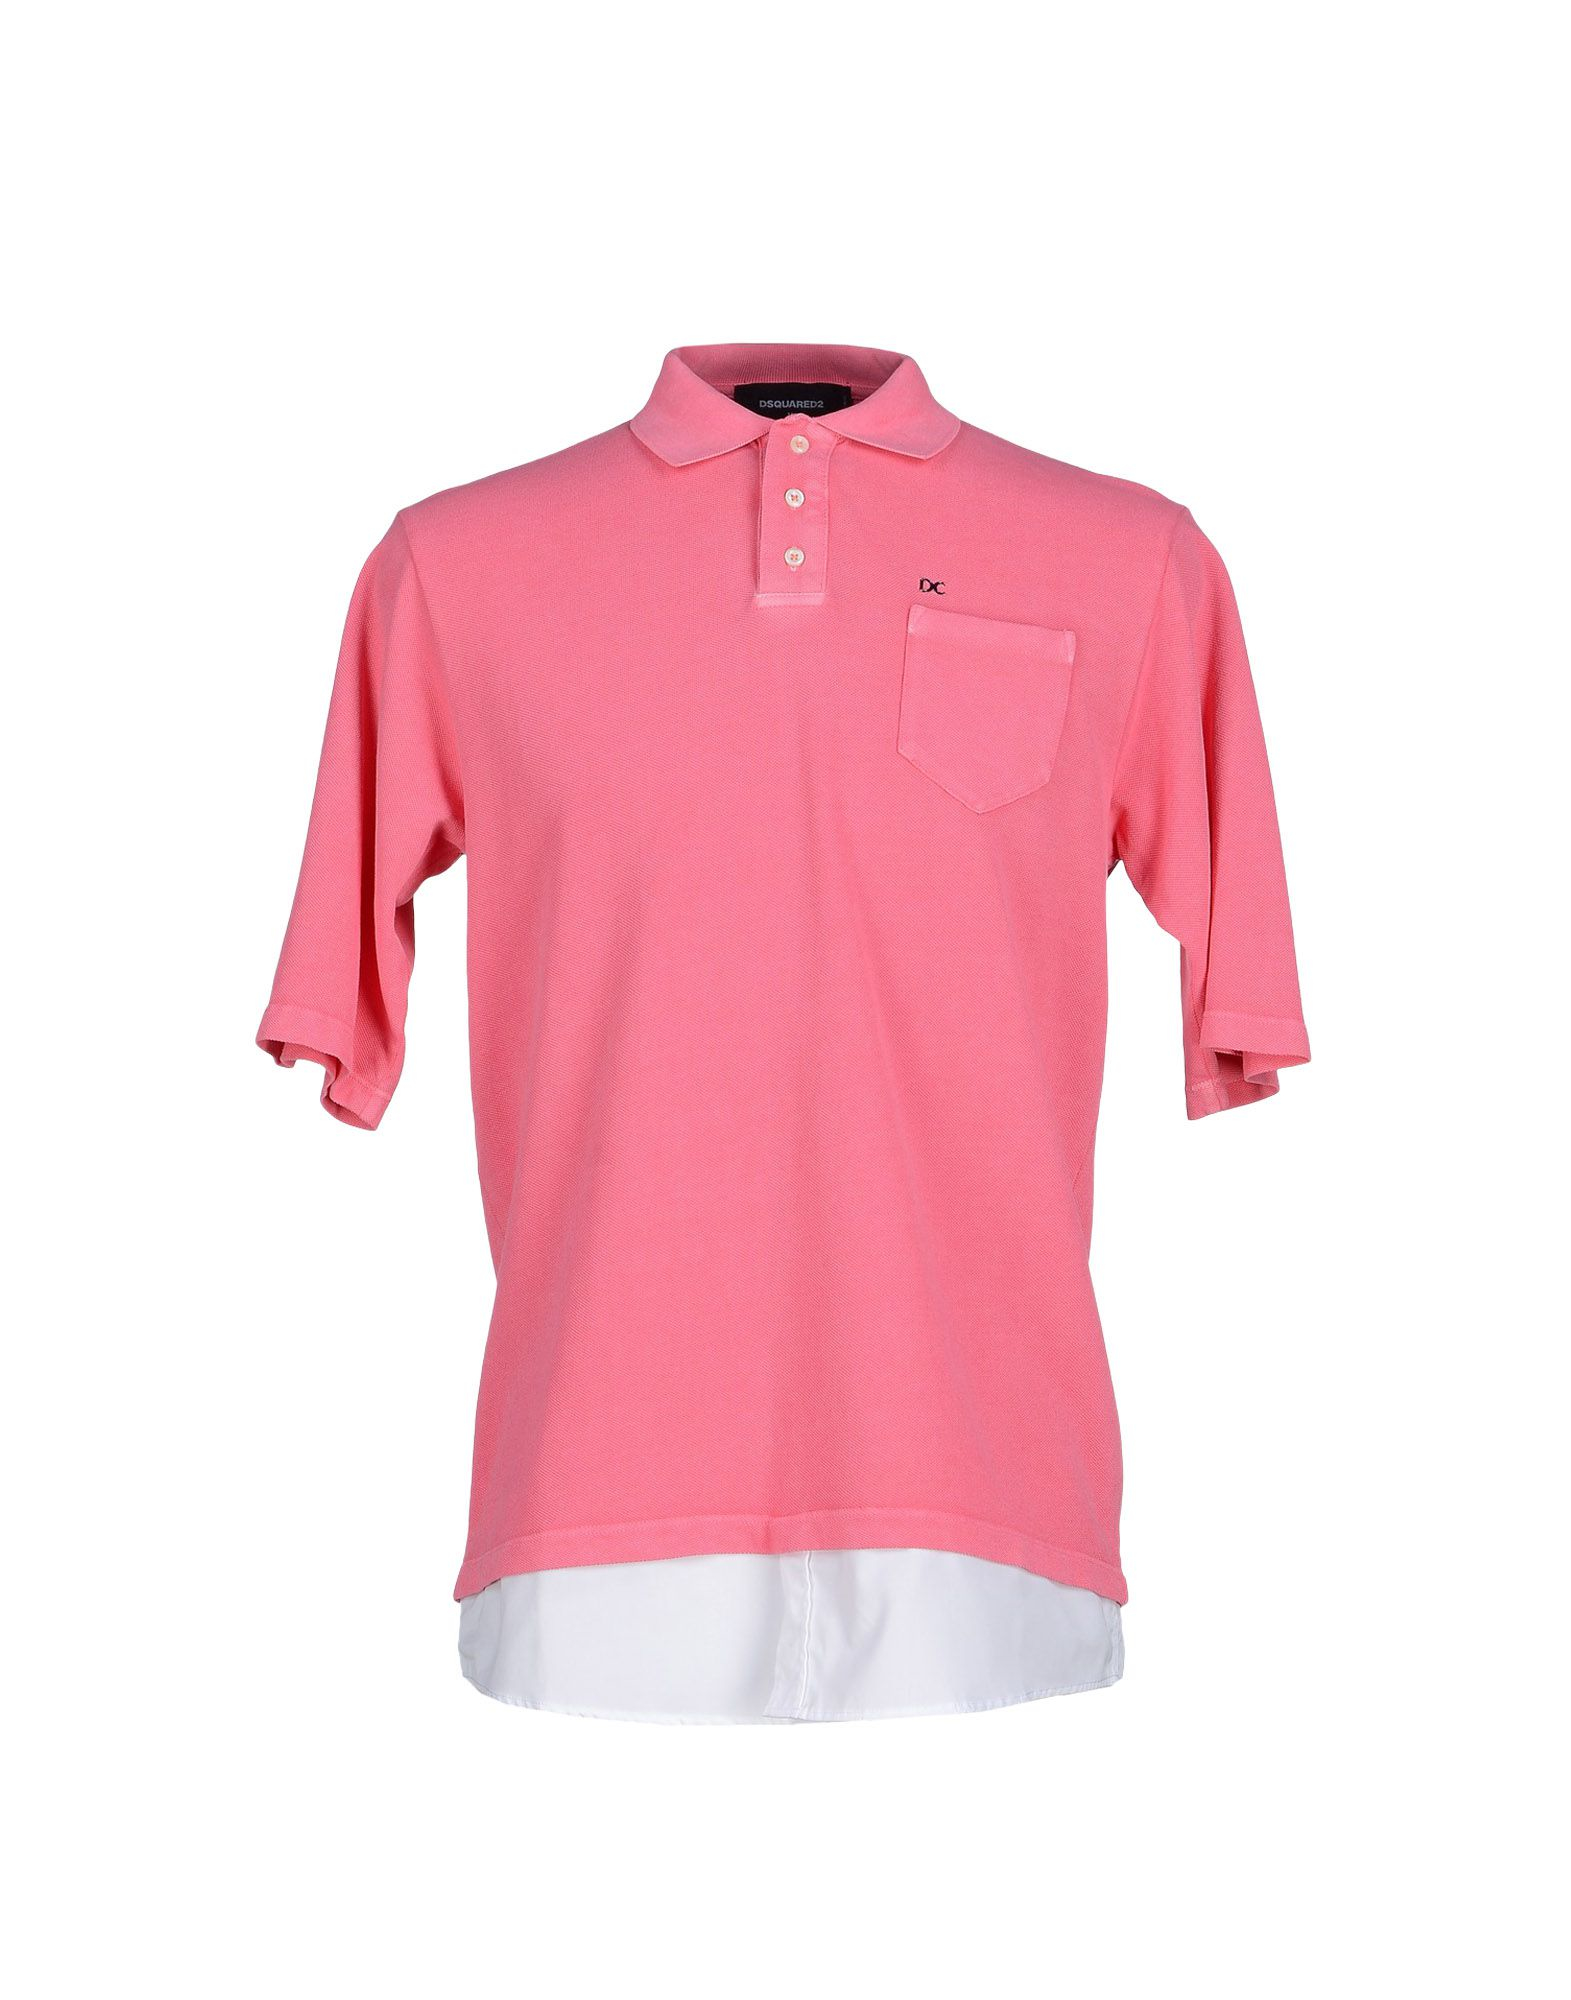 Dsquared polo shirt in pink for men lyst for Bear river workwear shirts